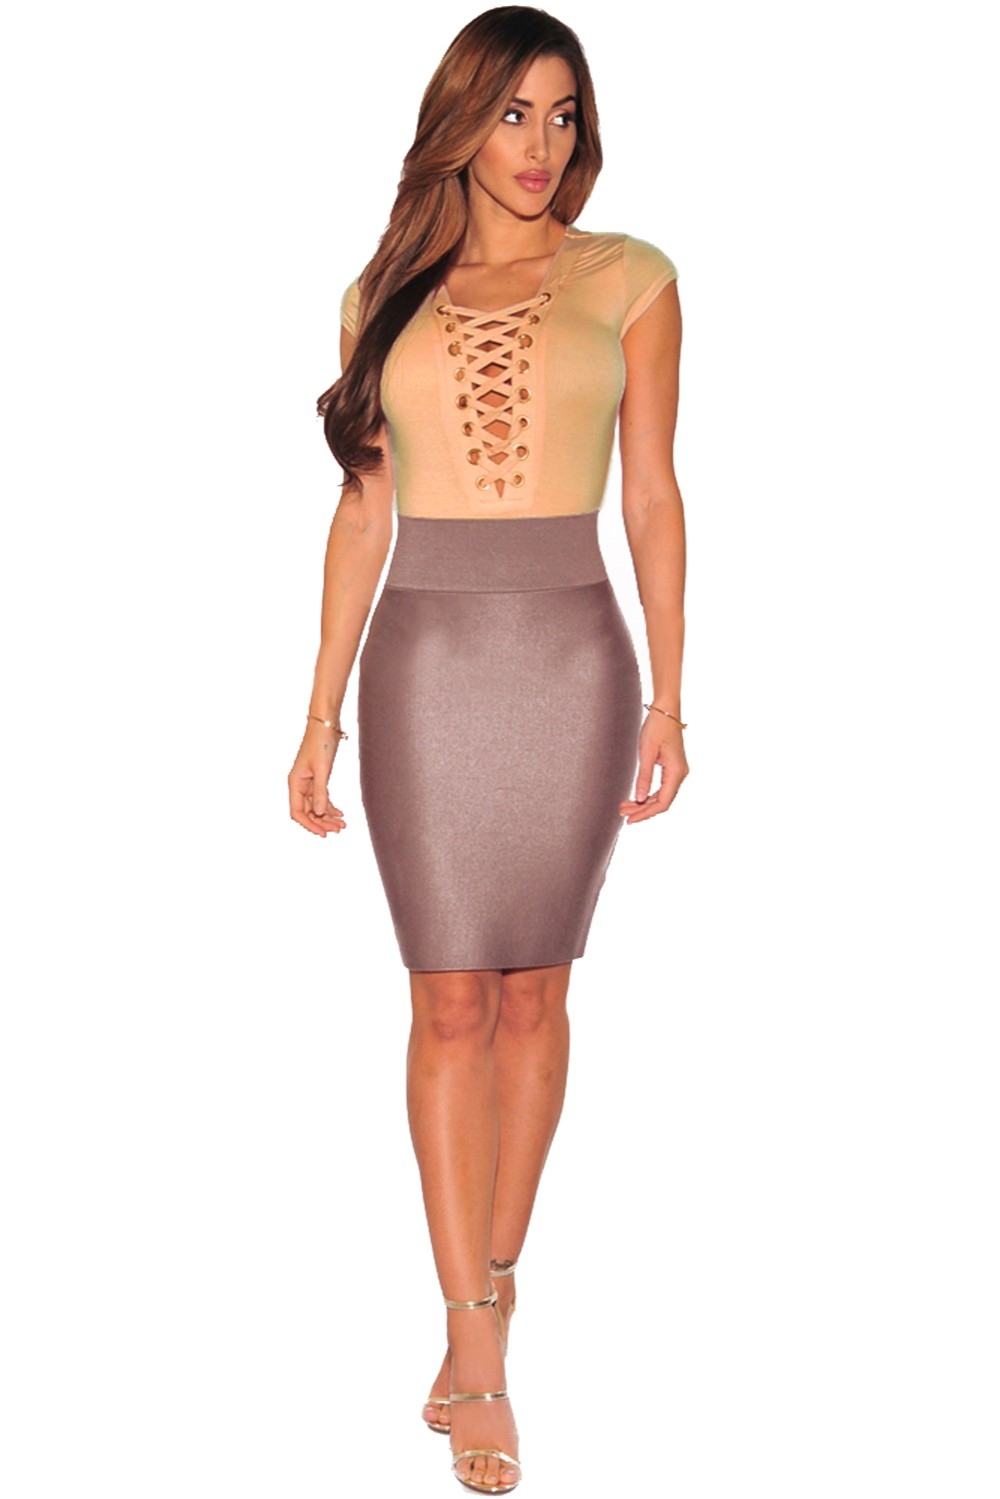 Apricot-Lace-Up-Cap-Sleeves-Bodysuit-LC32048-18-1